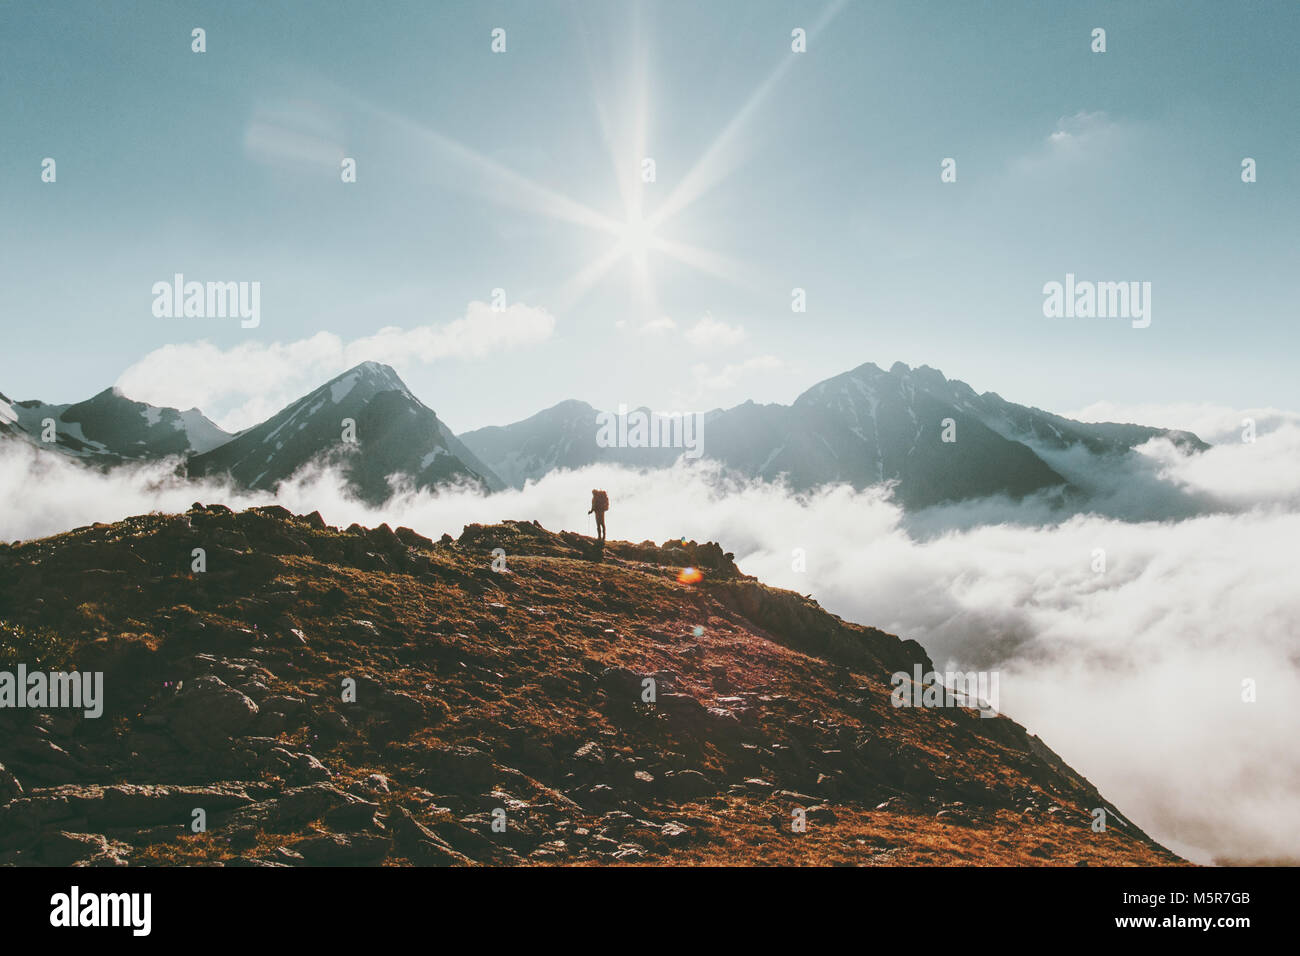 Mountains landscape Travel lifestyle adventure concept traveler standing alone summer vacations outdoor sunny day - Stock Image